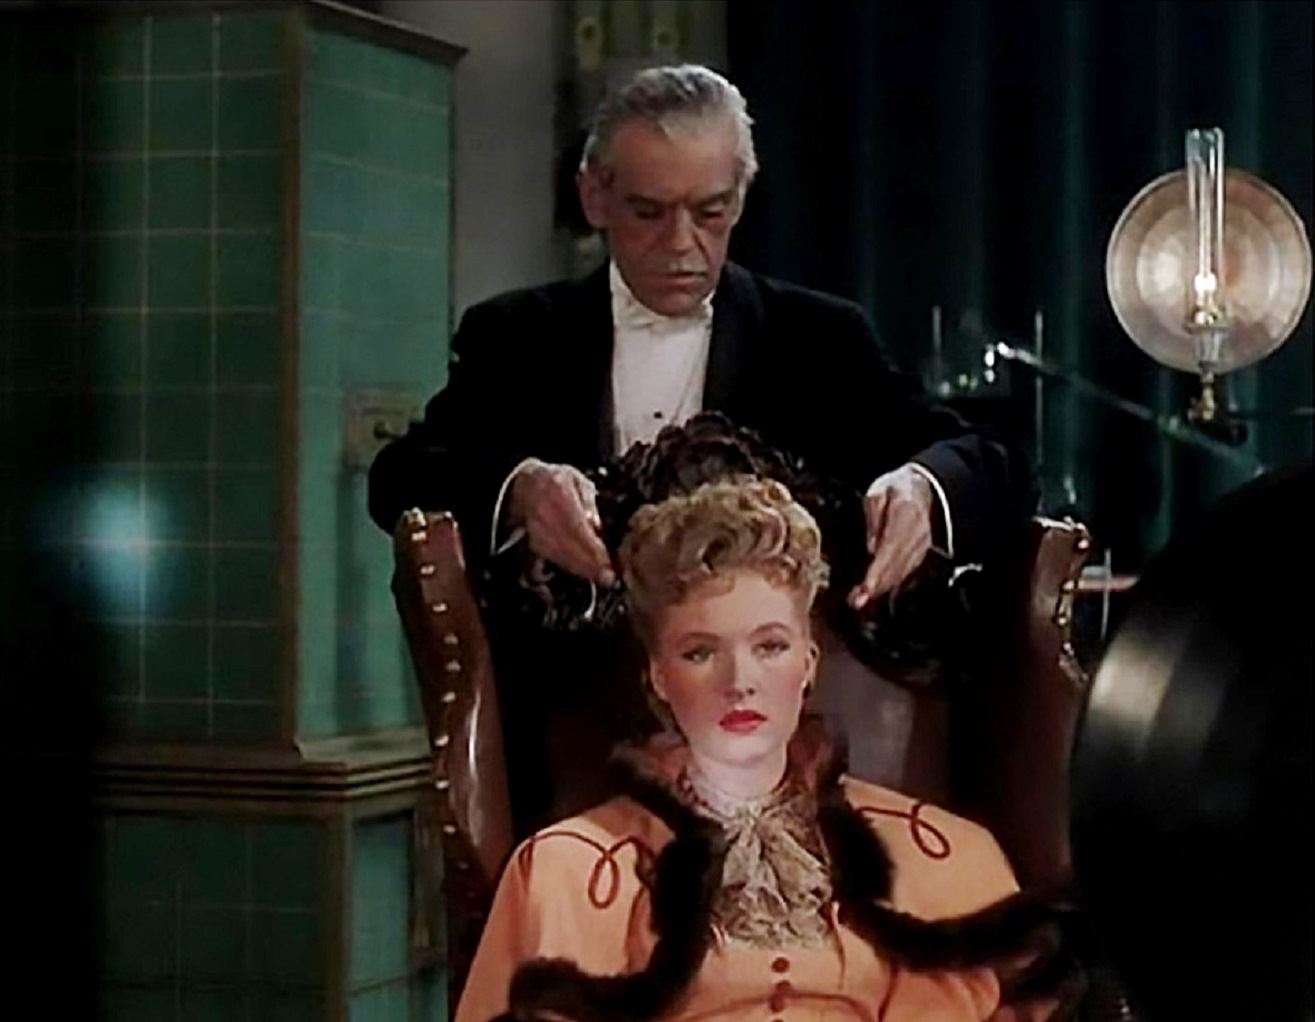 Boris Karloff and Susanna Foster in The Climax (1944)